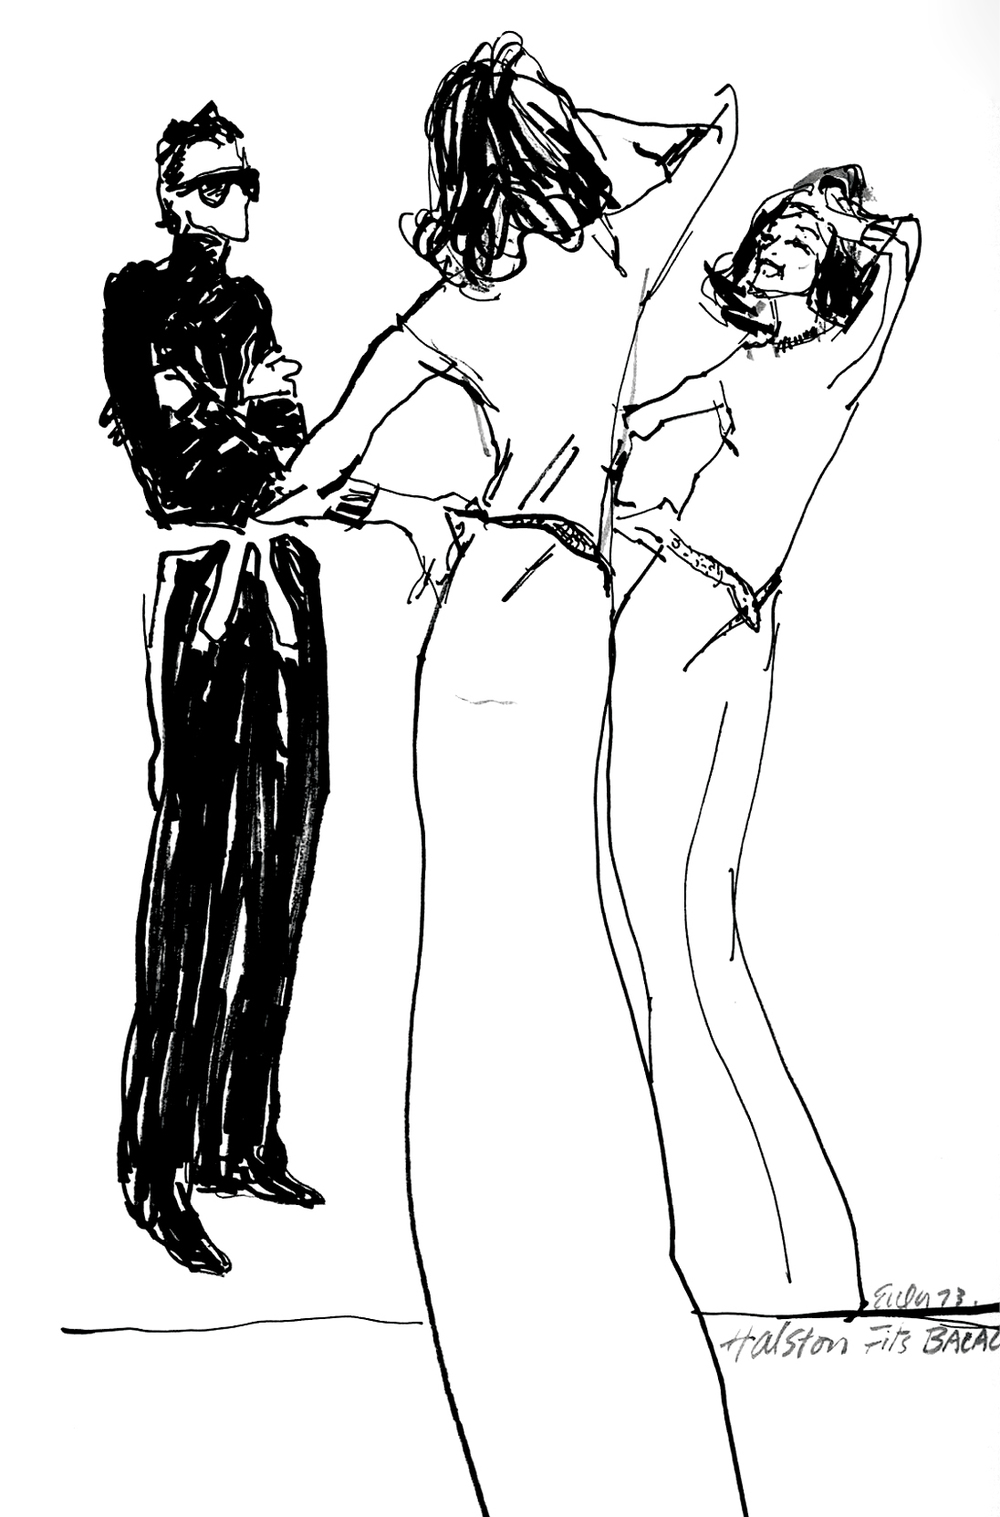 Joe Eula's illustration of Halston fitting Lauren Bacall in a long cashmere dress, 1973.